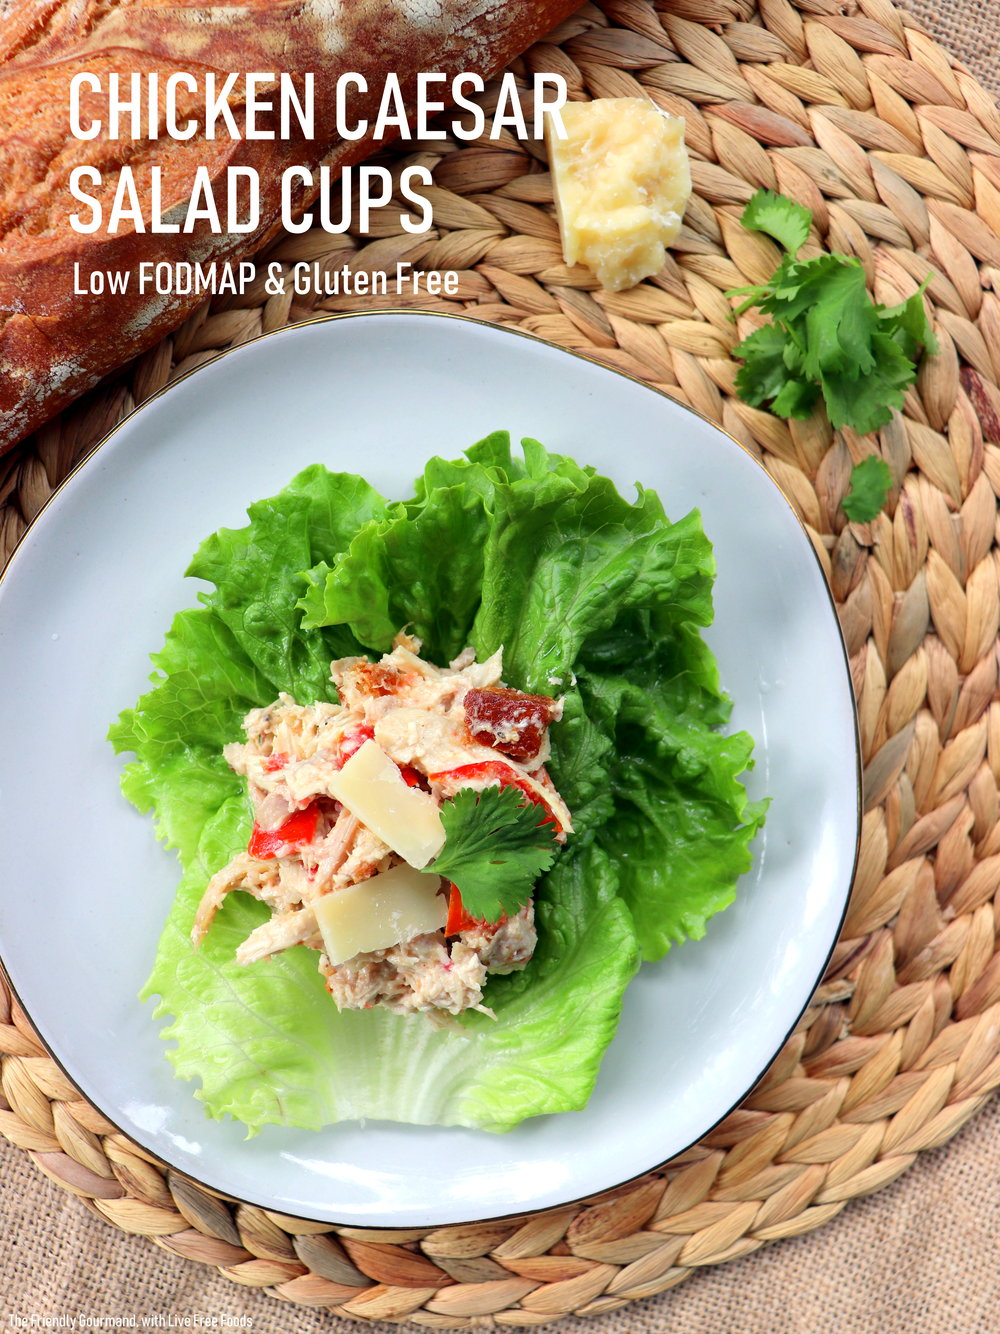 Chicken Caesar Salad Cups with Live Free Foods & The Friendly Gourmand - Low FODMAP, Gluten Free.JPG